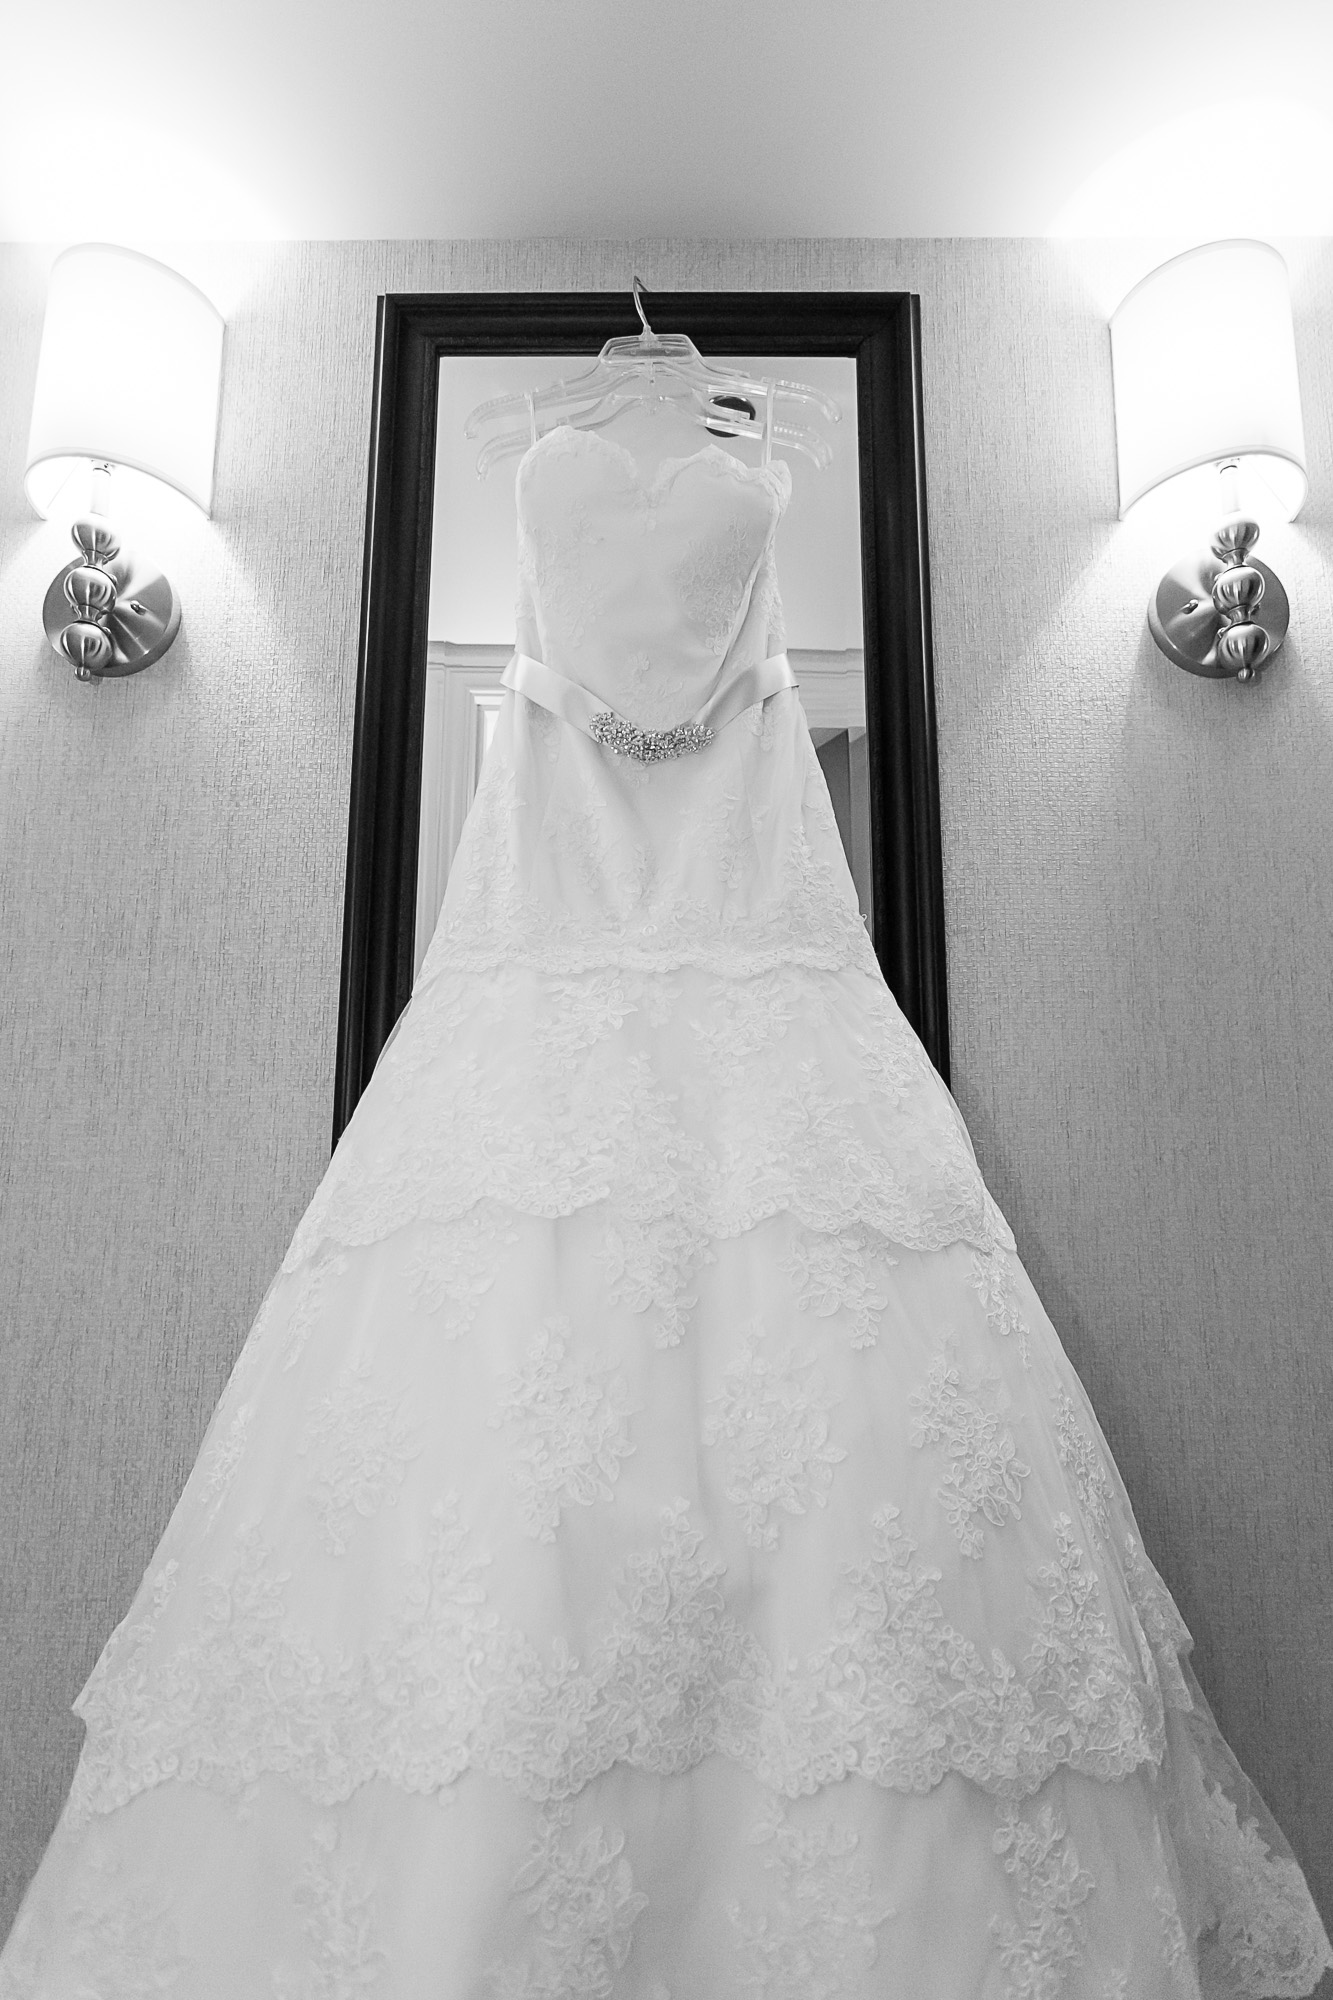 The dress is ready.